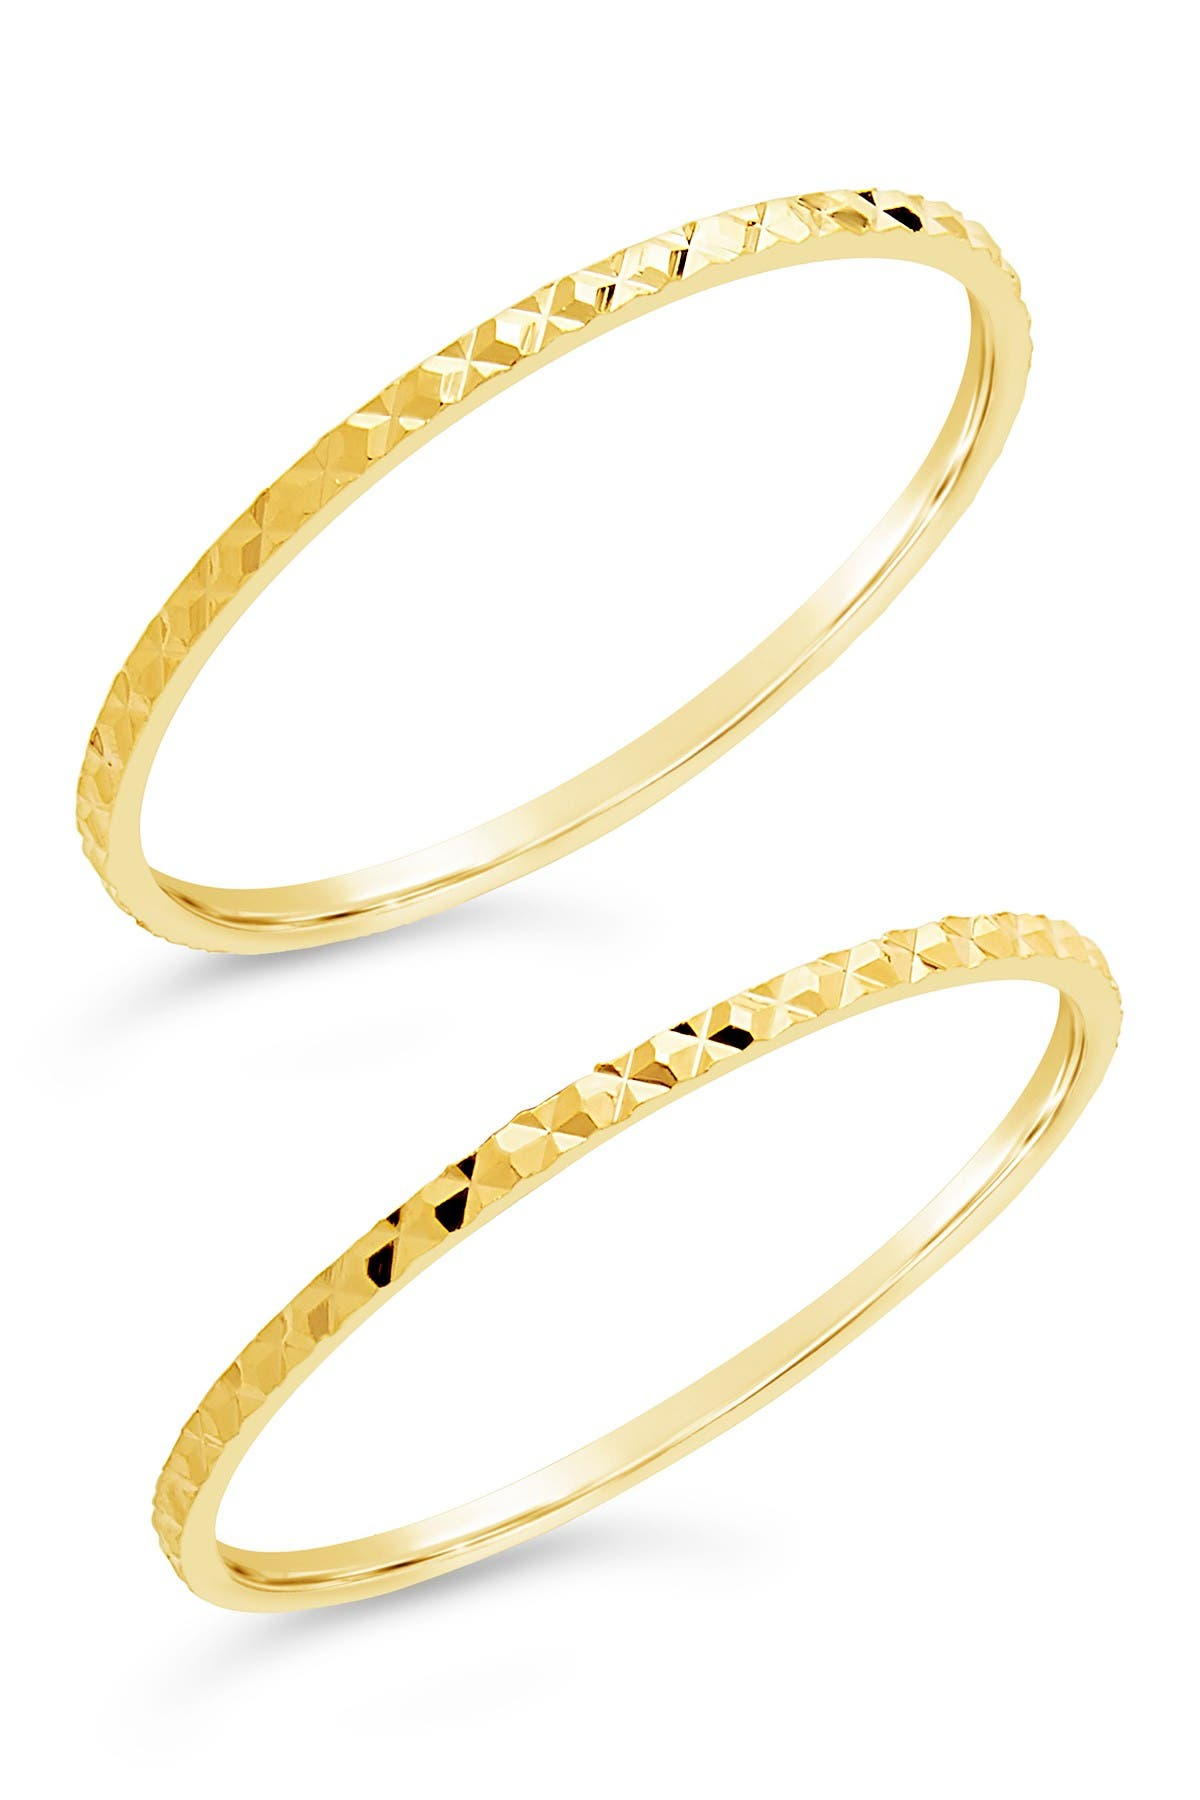 Image of Sterling Forever 14K Yellow Gold Vermeil Textured Ring - Set of 2